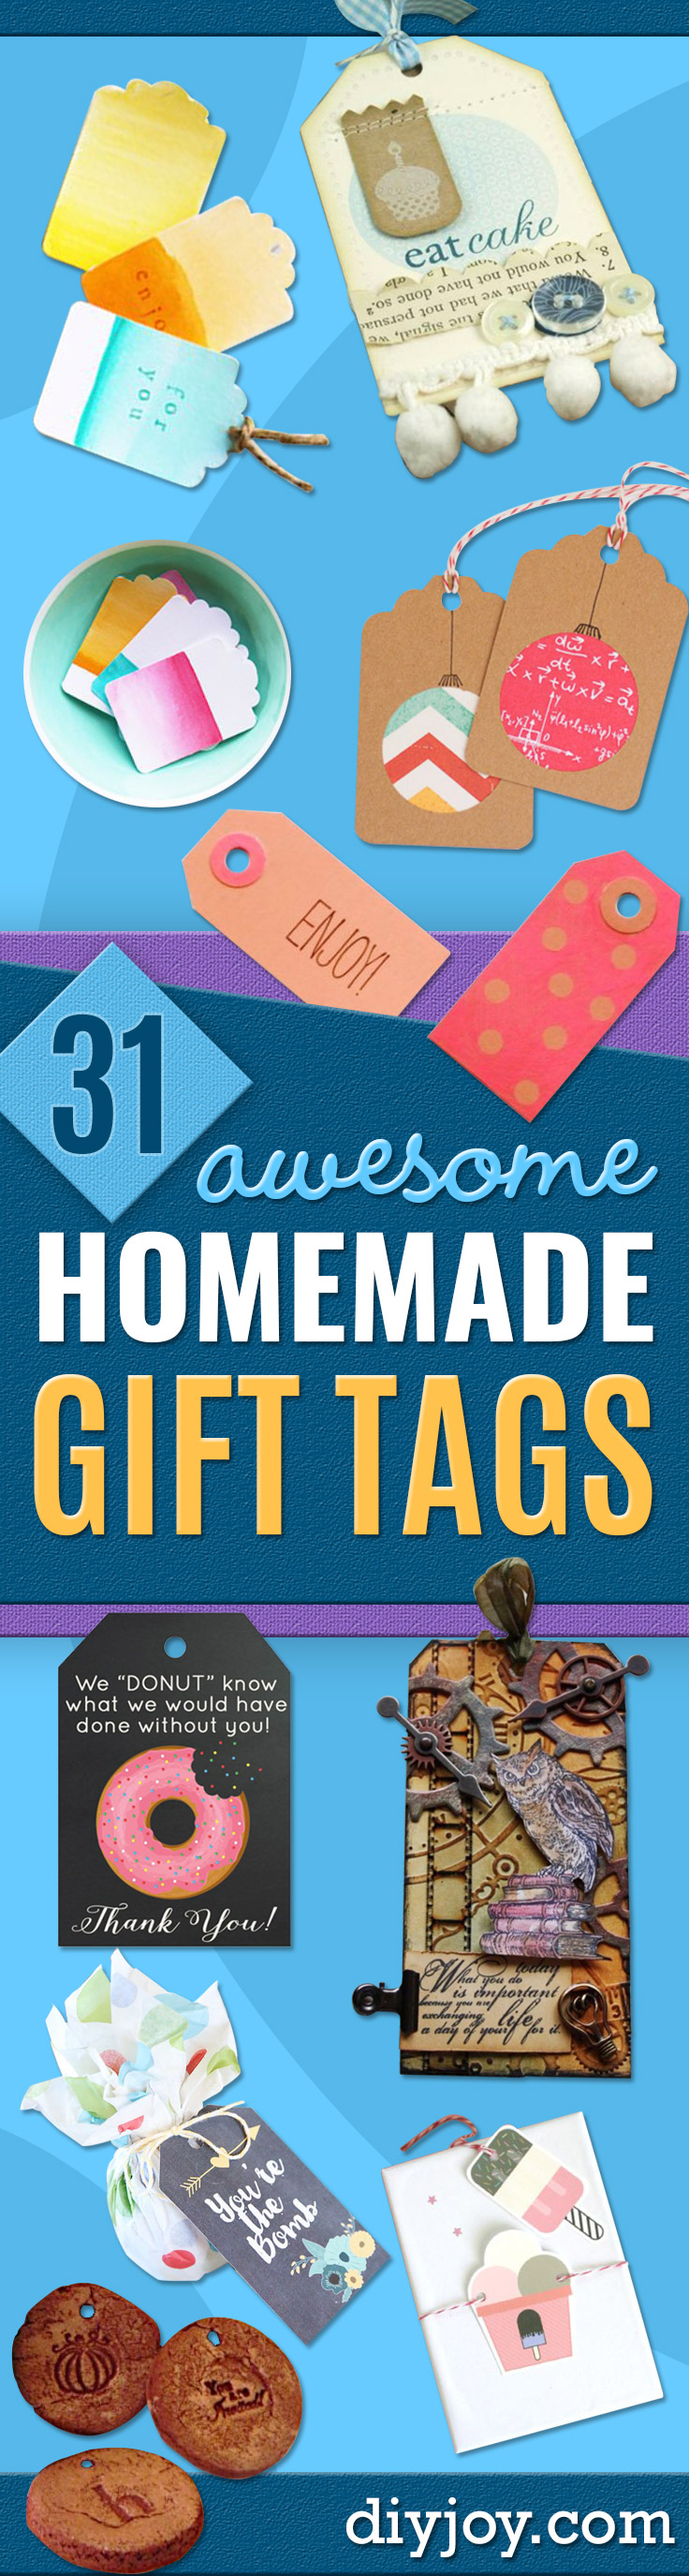 Homemade Gift Cards and Tags - Easy and Cheap Ideas for Creative Handmade Birthday, Christmas, Mothers Day and Father Day Cards - Cute Holiday Gift Tags, Dollar Store Crafts, Homemade DIY Gifts and Gift Card Holders You Can Make at Home - Fun Crafts for Adults, Kids and Teens http://diyjoy.com/homemade-gift-cards-tags